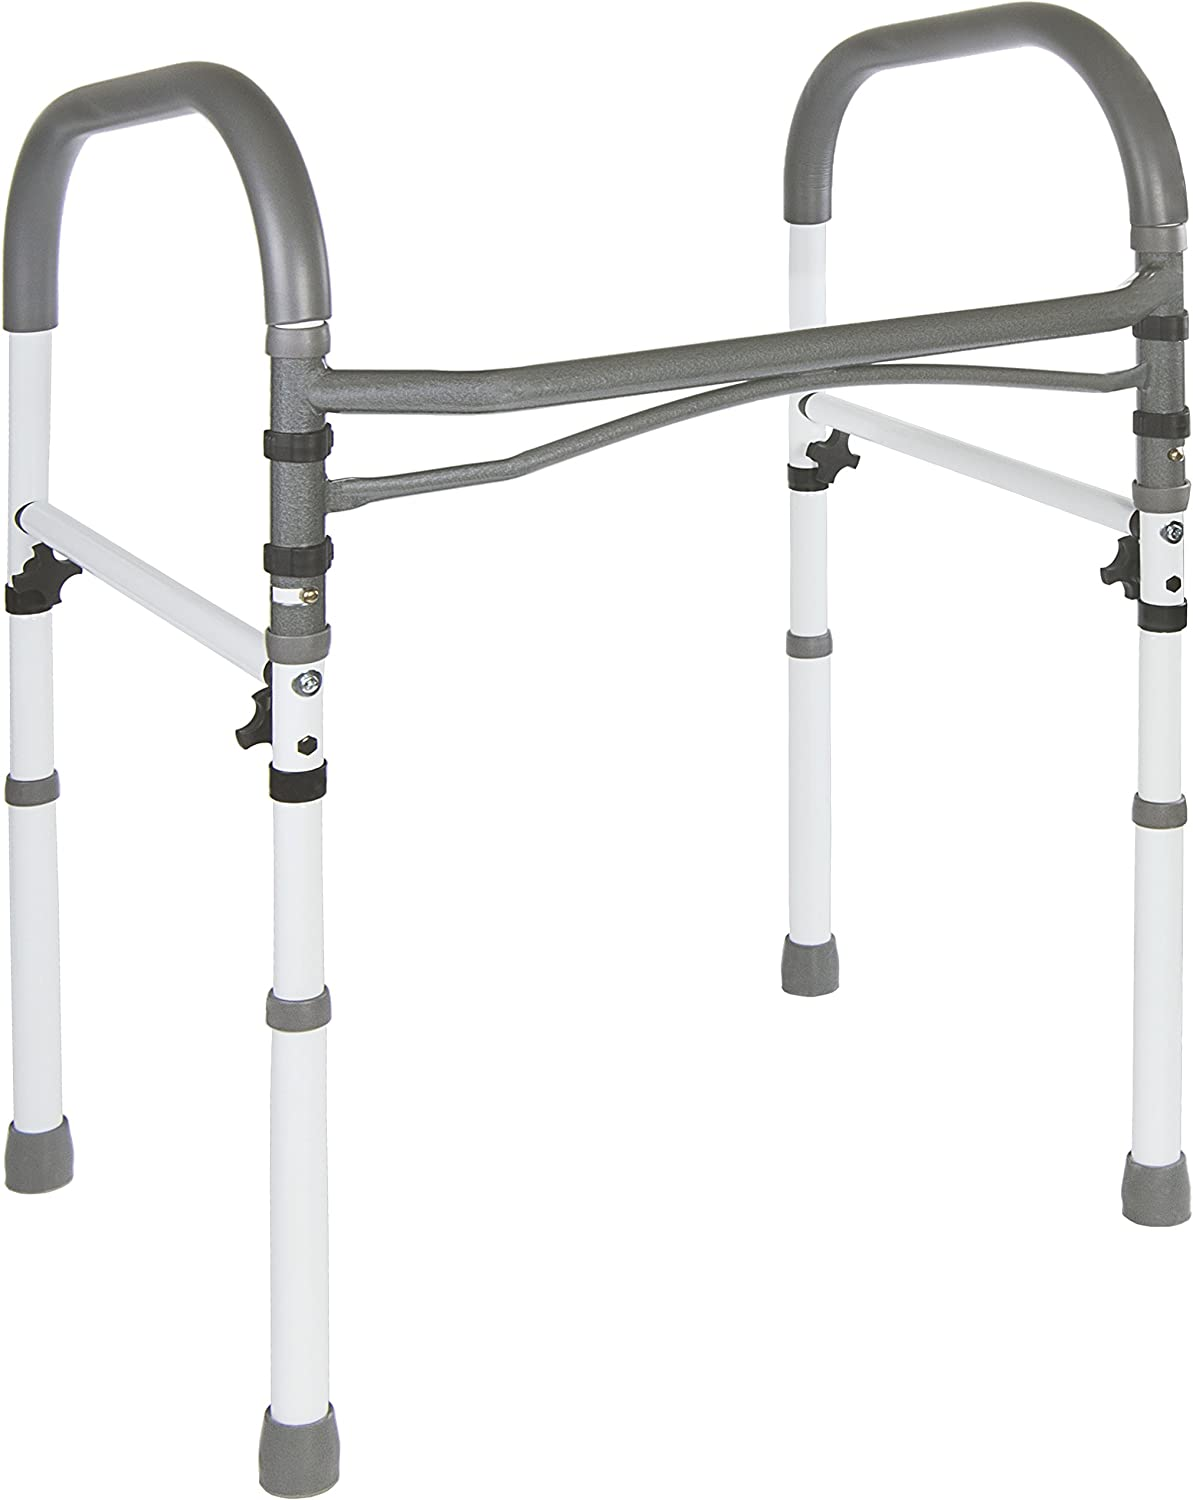 Vaunn Deluxe Bathroom Safety Toilet Rail - Adjustable Toilet Safety Frame - Medical Handrail Assist Grab bar Handle, Gray: Health & Personal Care